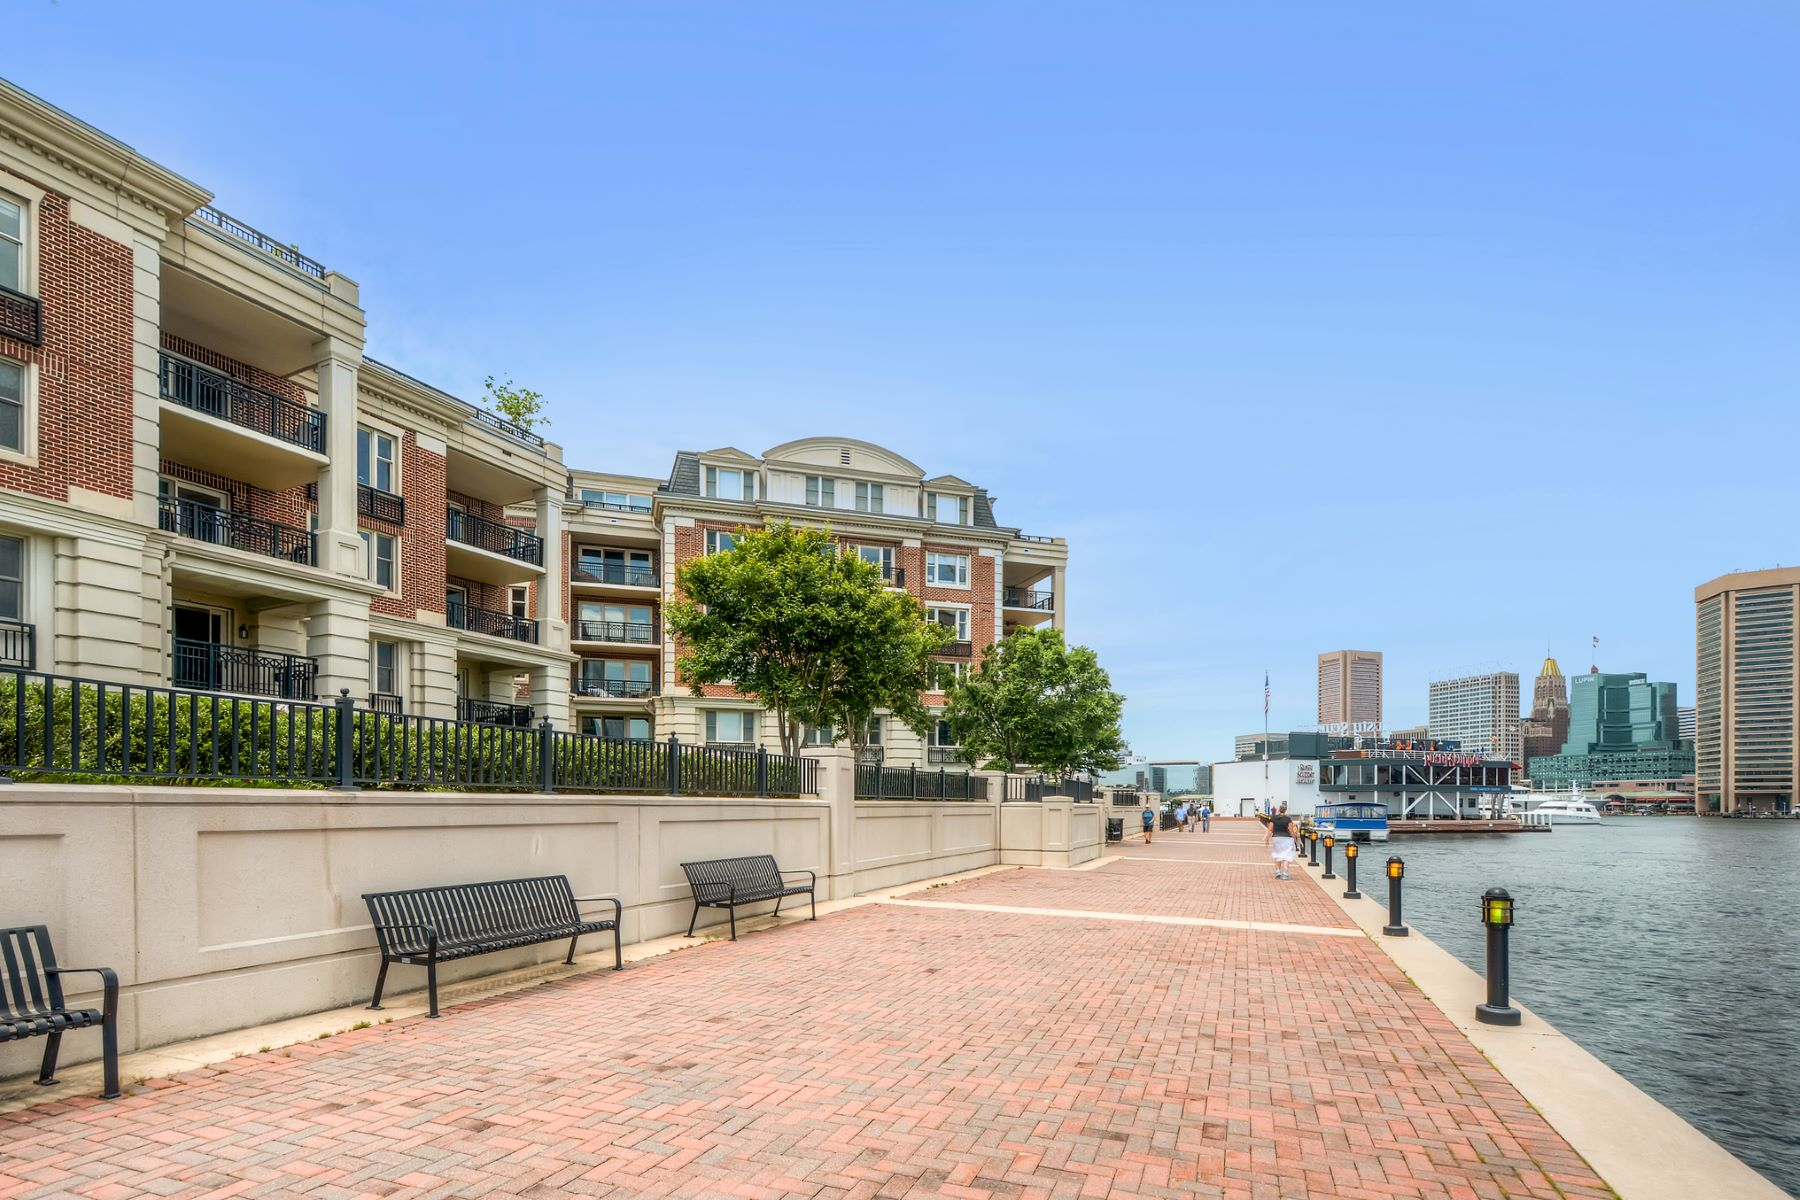 Condominium for Rent at The Ritz-Carlton Residences 801 Key Highway #411 Baltimore, Maryland 21230 United States